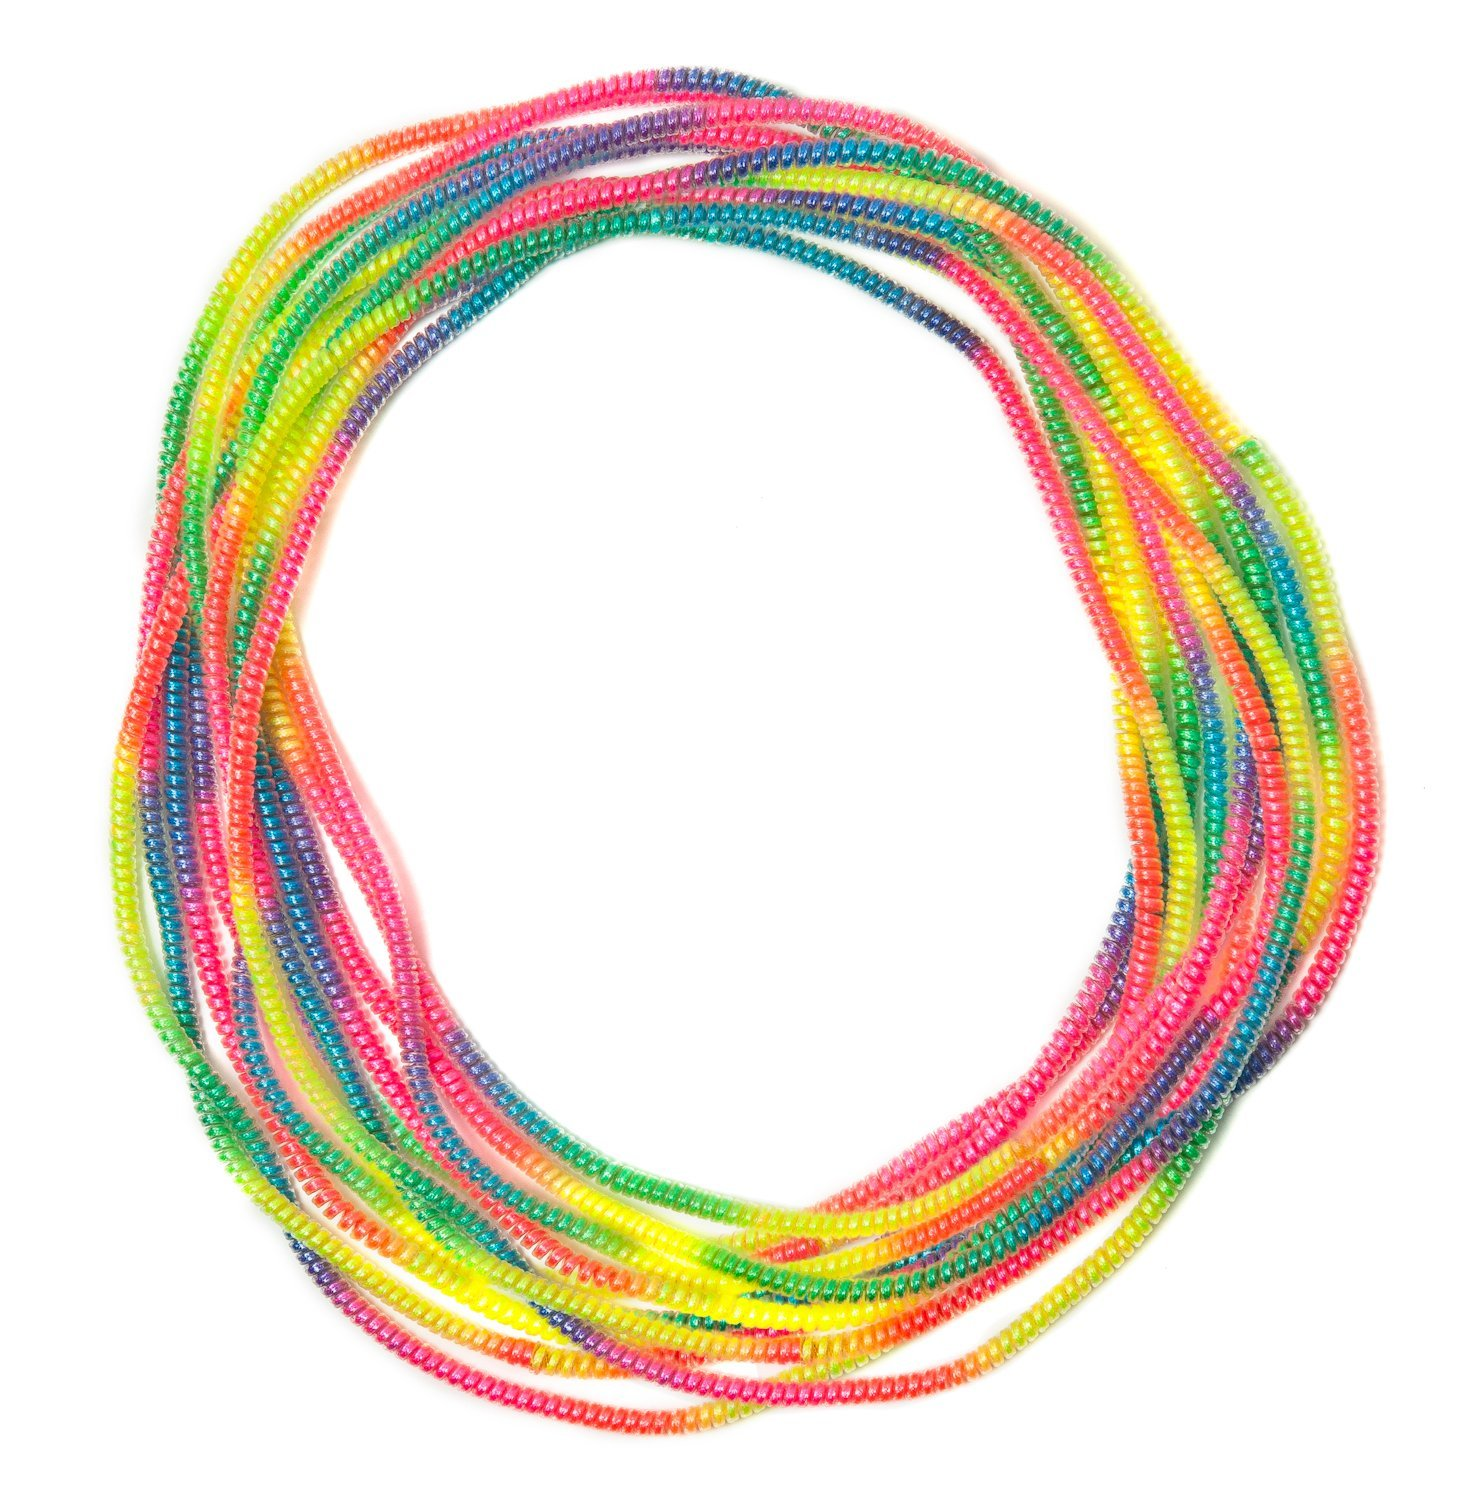 Fidget Jewelry Pain Free Necklace Fun Sensory Motor Aid Speech And Communication Aid Great For Autism And Sensory-Focused Kids - 12 Pack Rainbow Colors by Chewzy Sensations